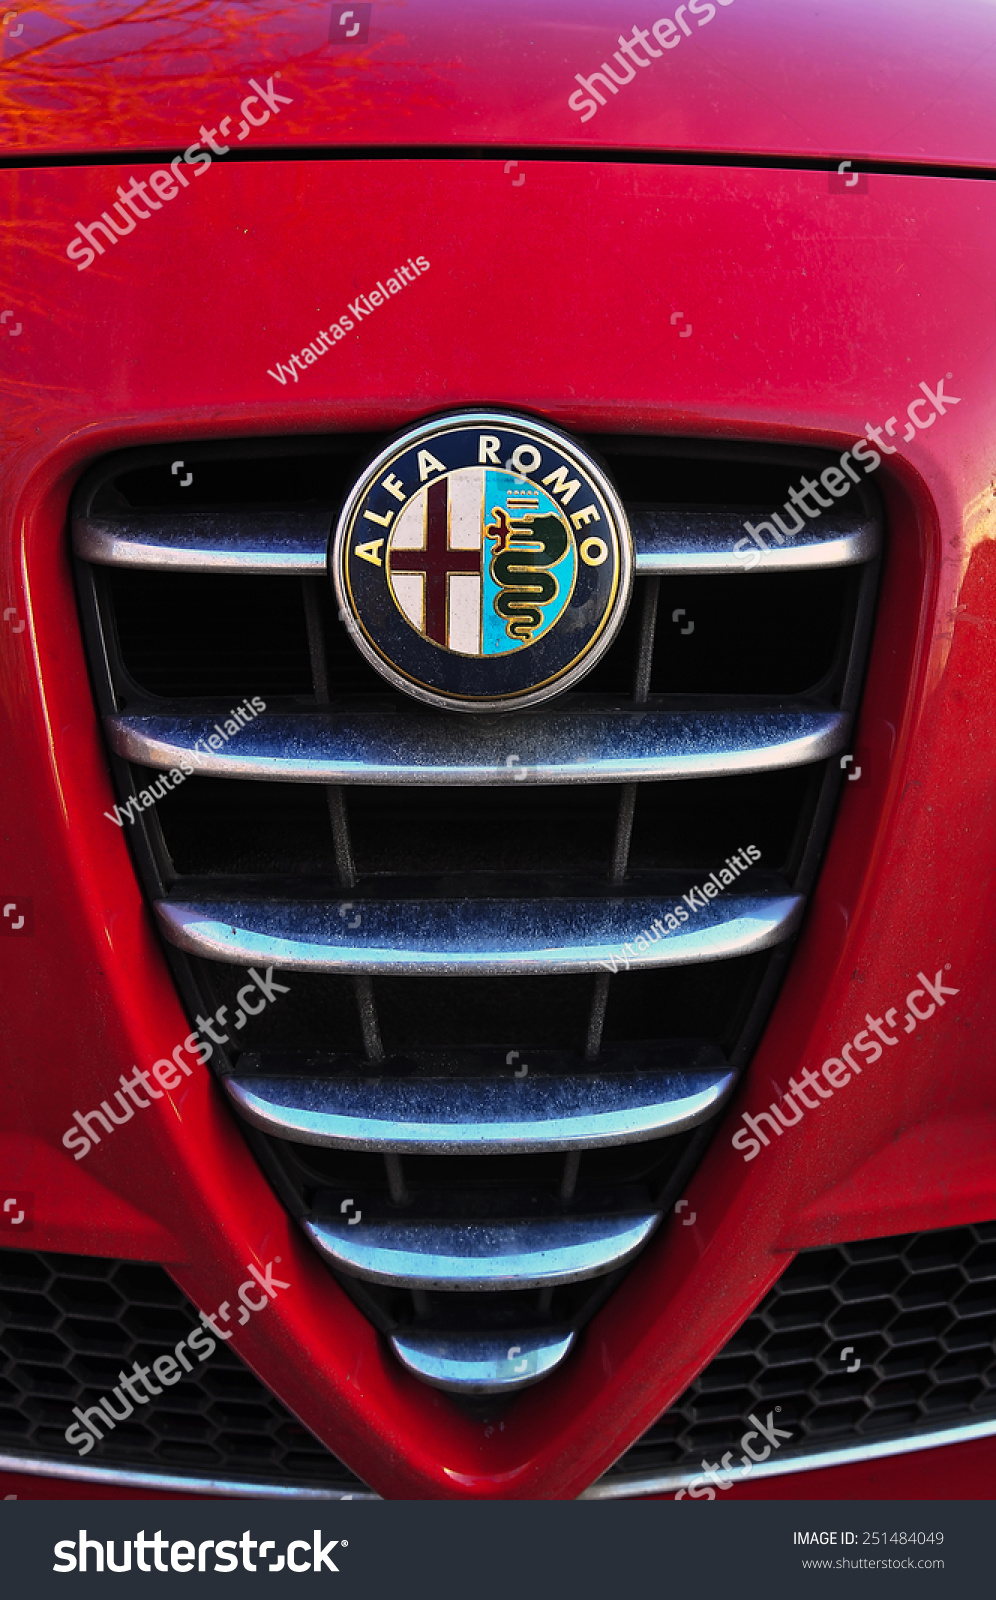 Mainzgermanyfeb 07 Alfa Romeo Logo On February Stock Photo Edit Now Mainzgermany Feb 07alfa 072015 In